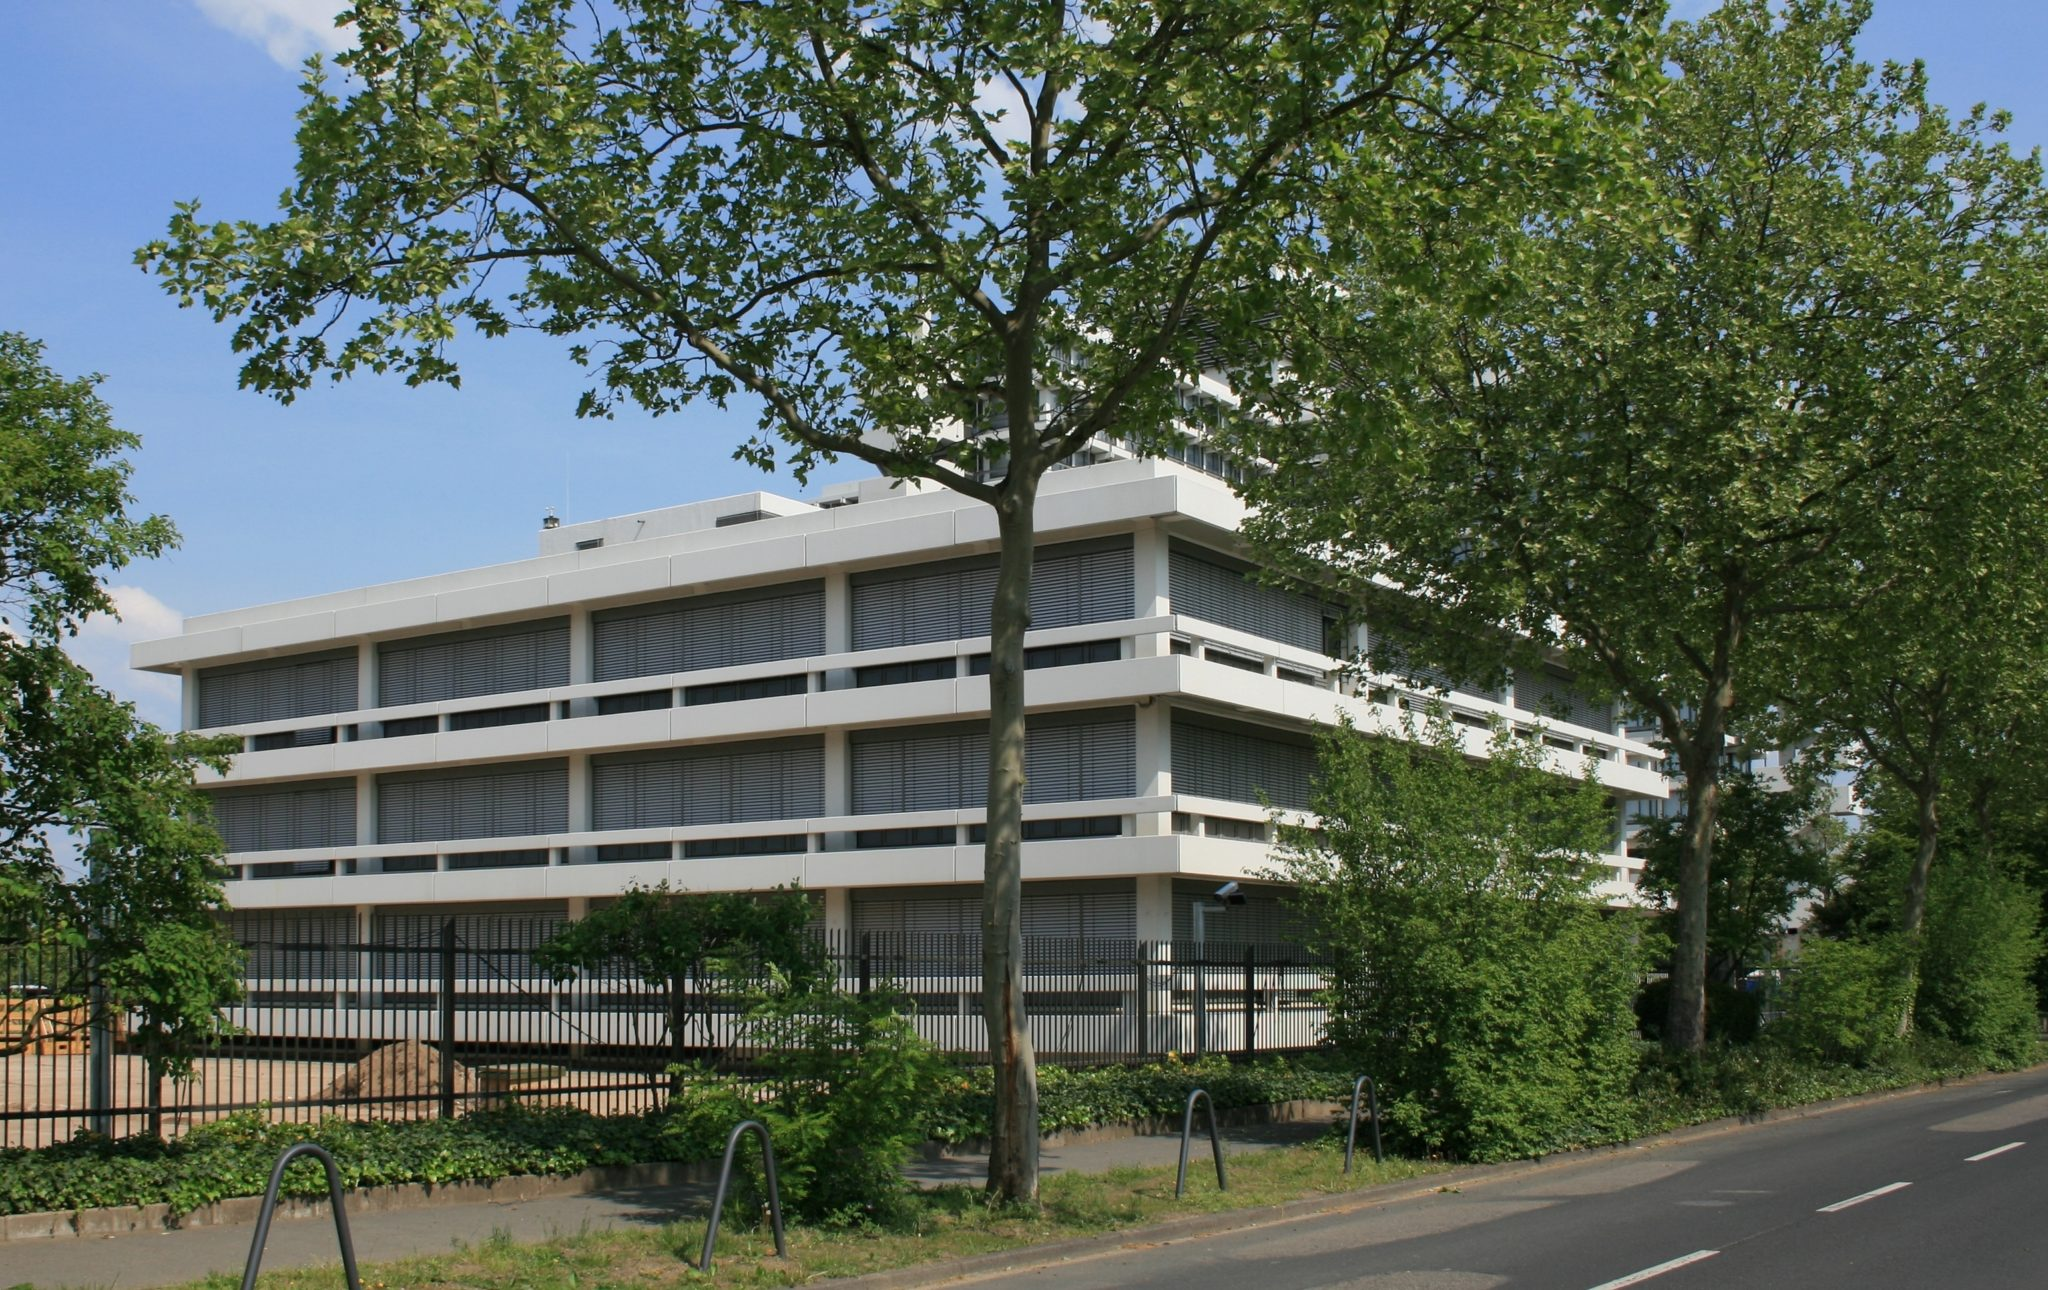 The German Centre for Rail Transport Research is located at the EBA, Bonn